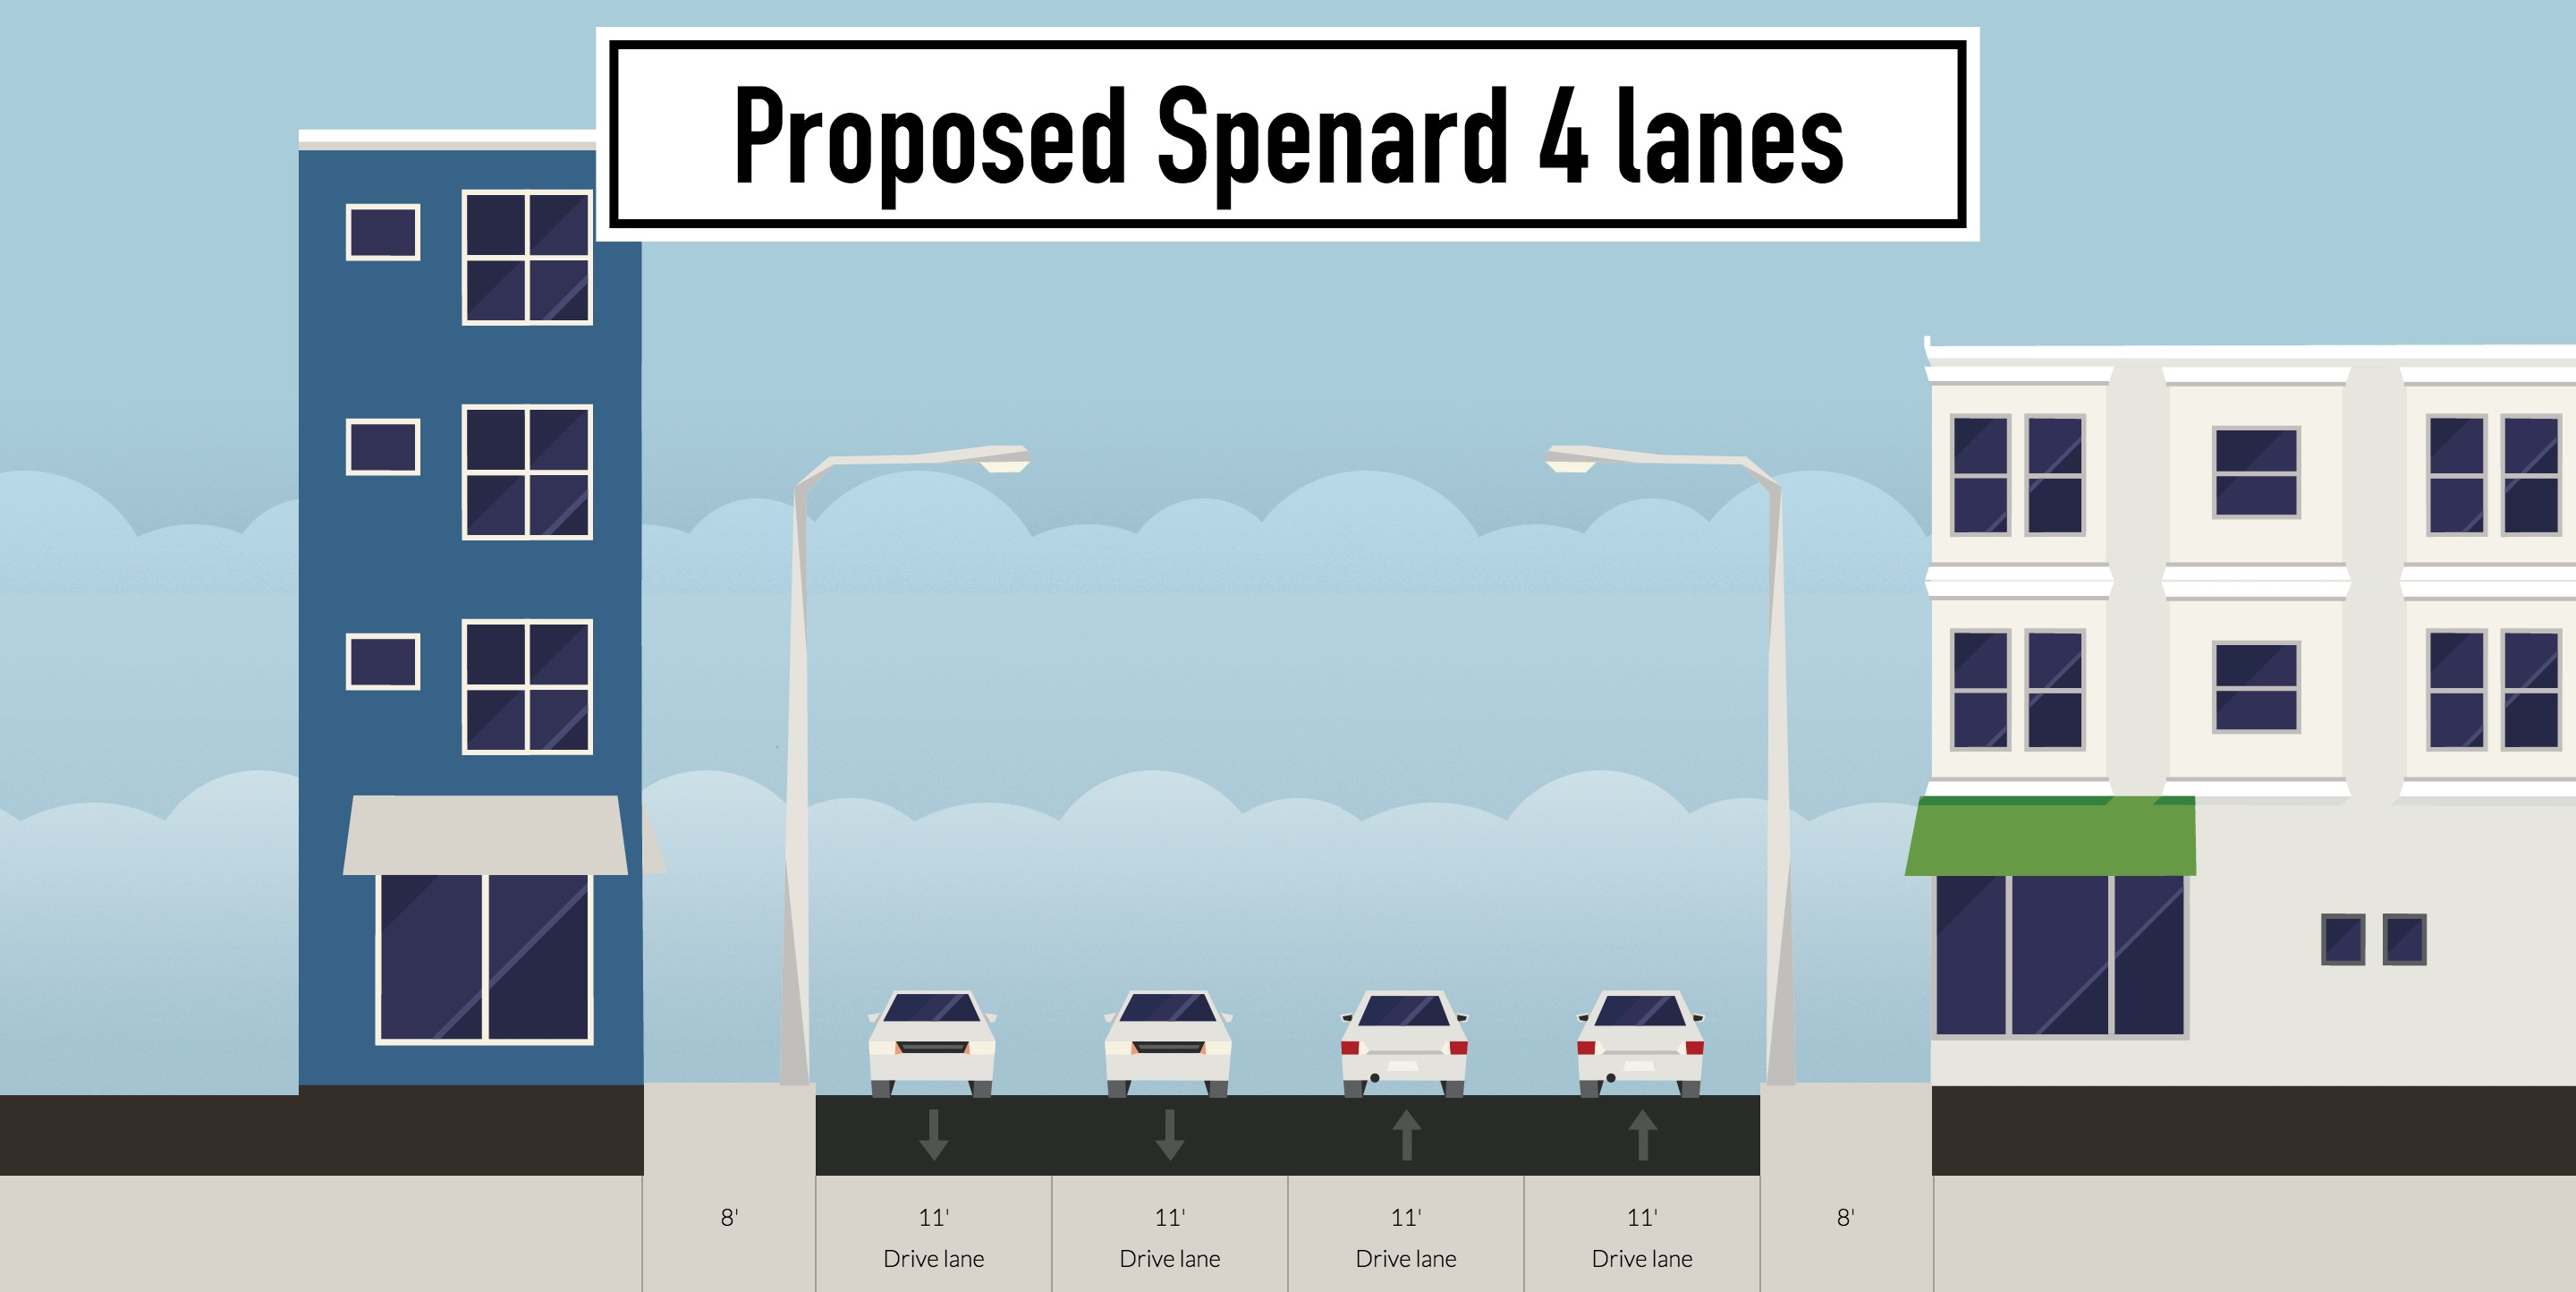 proposed-spenard-4-lanes.jpg